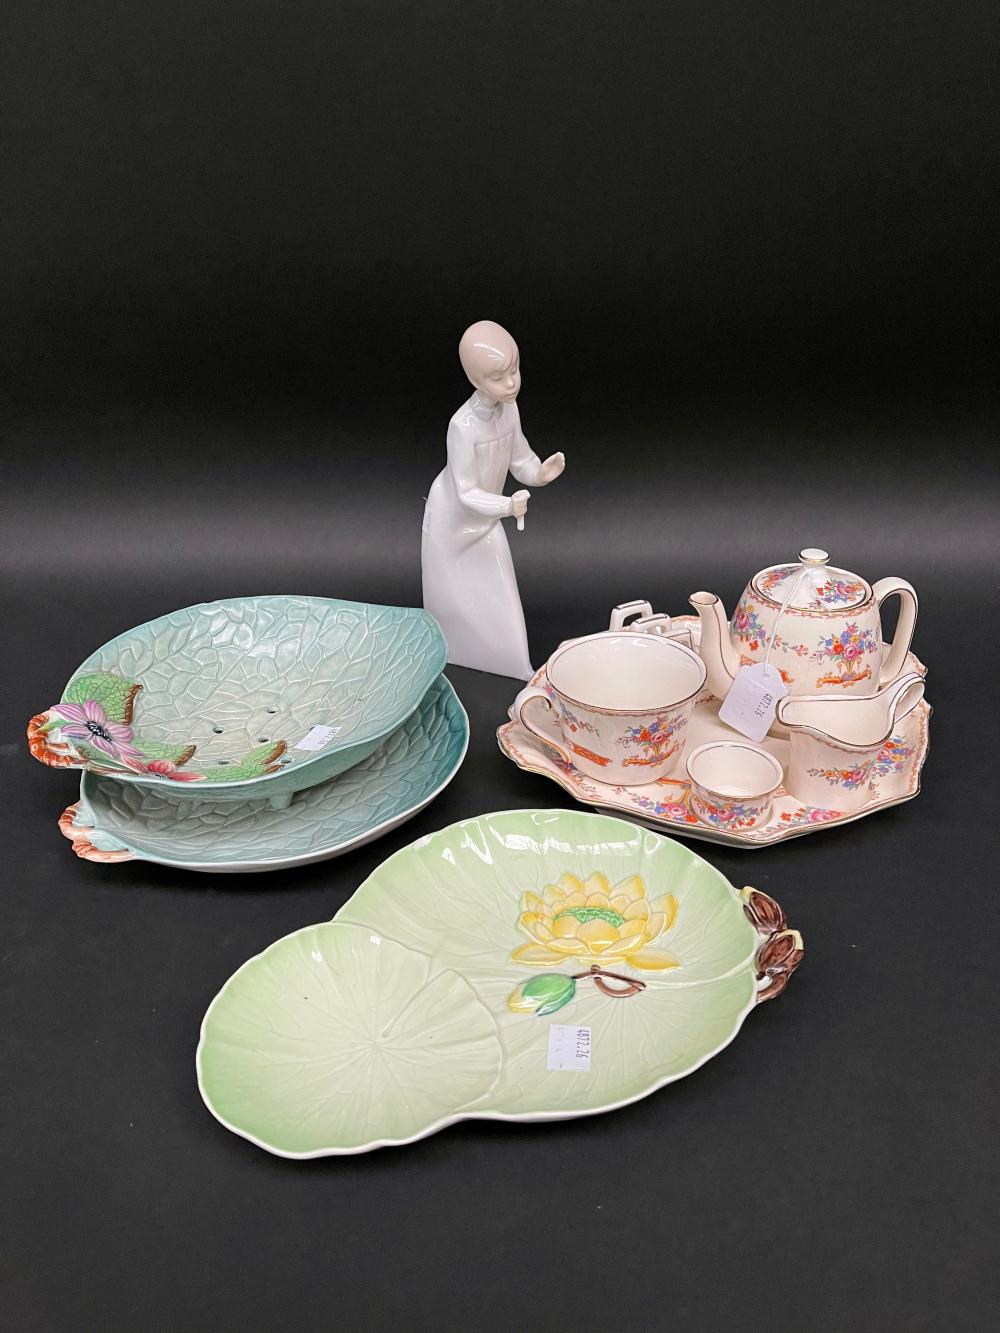 Carlton Ware lettuce strainers, another and Lladro style figure, etc, approx 22cm H and smaller